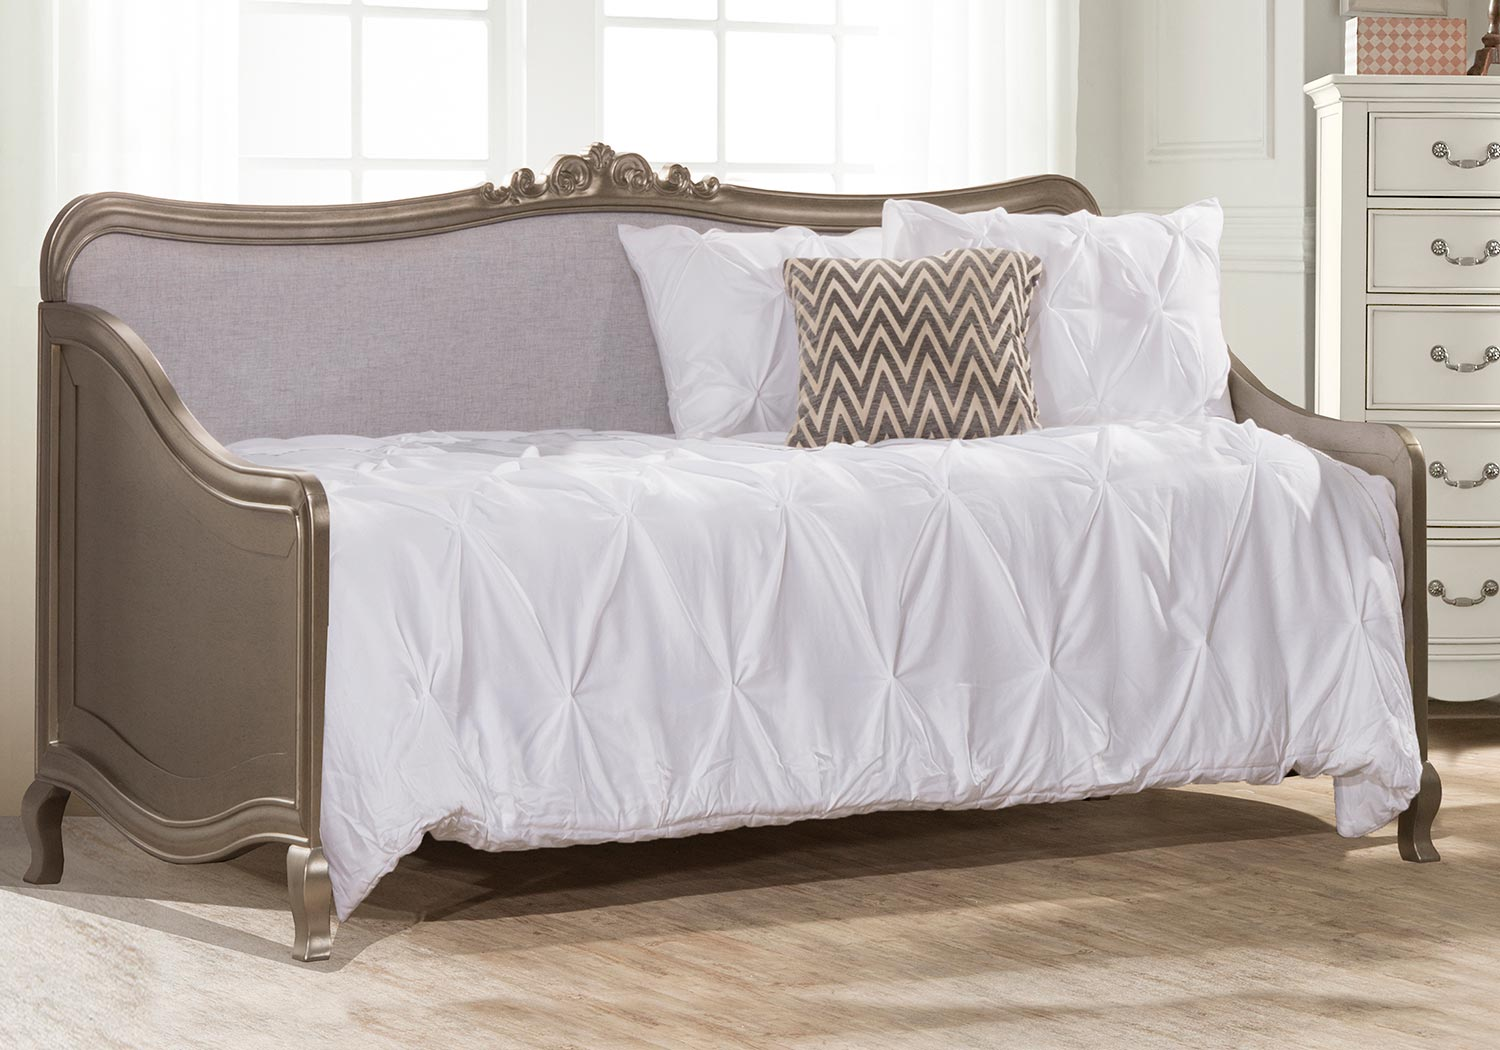 NE Kids Kensington Elizabeth Daybed - Antique Silver